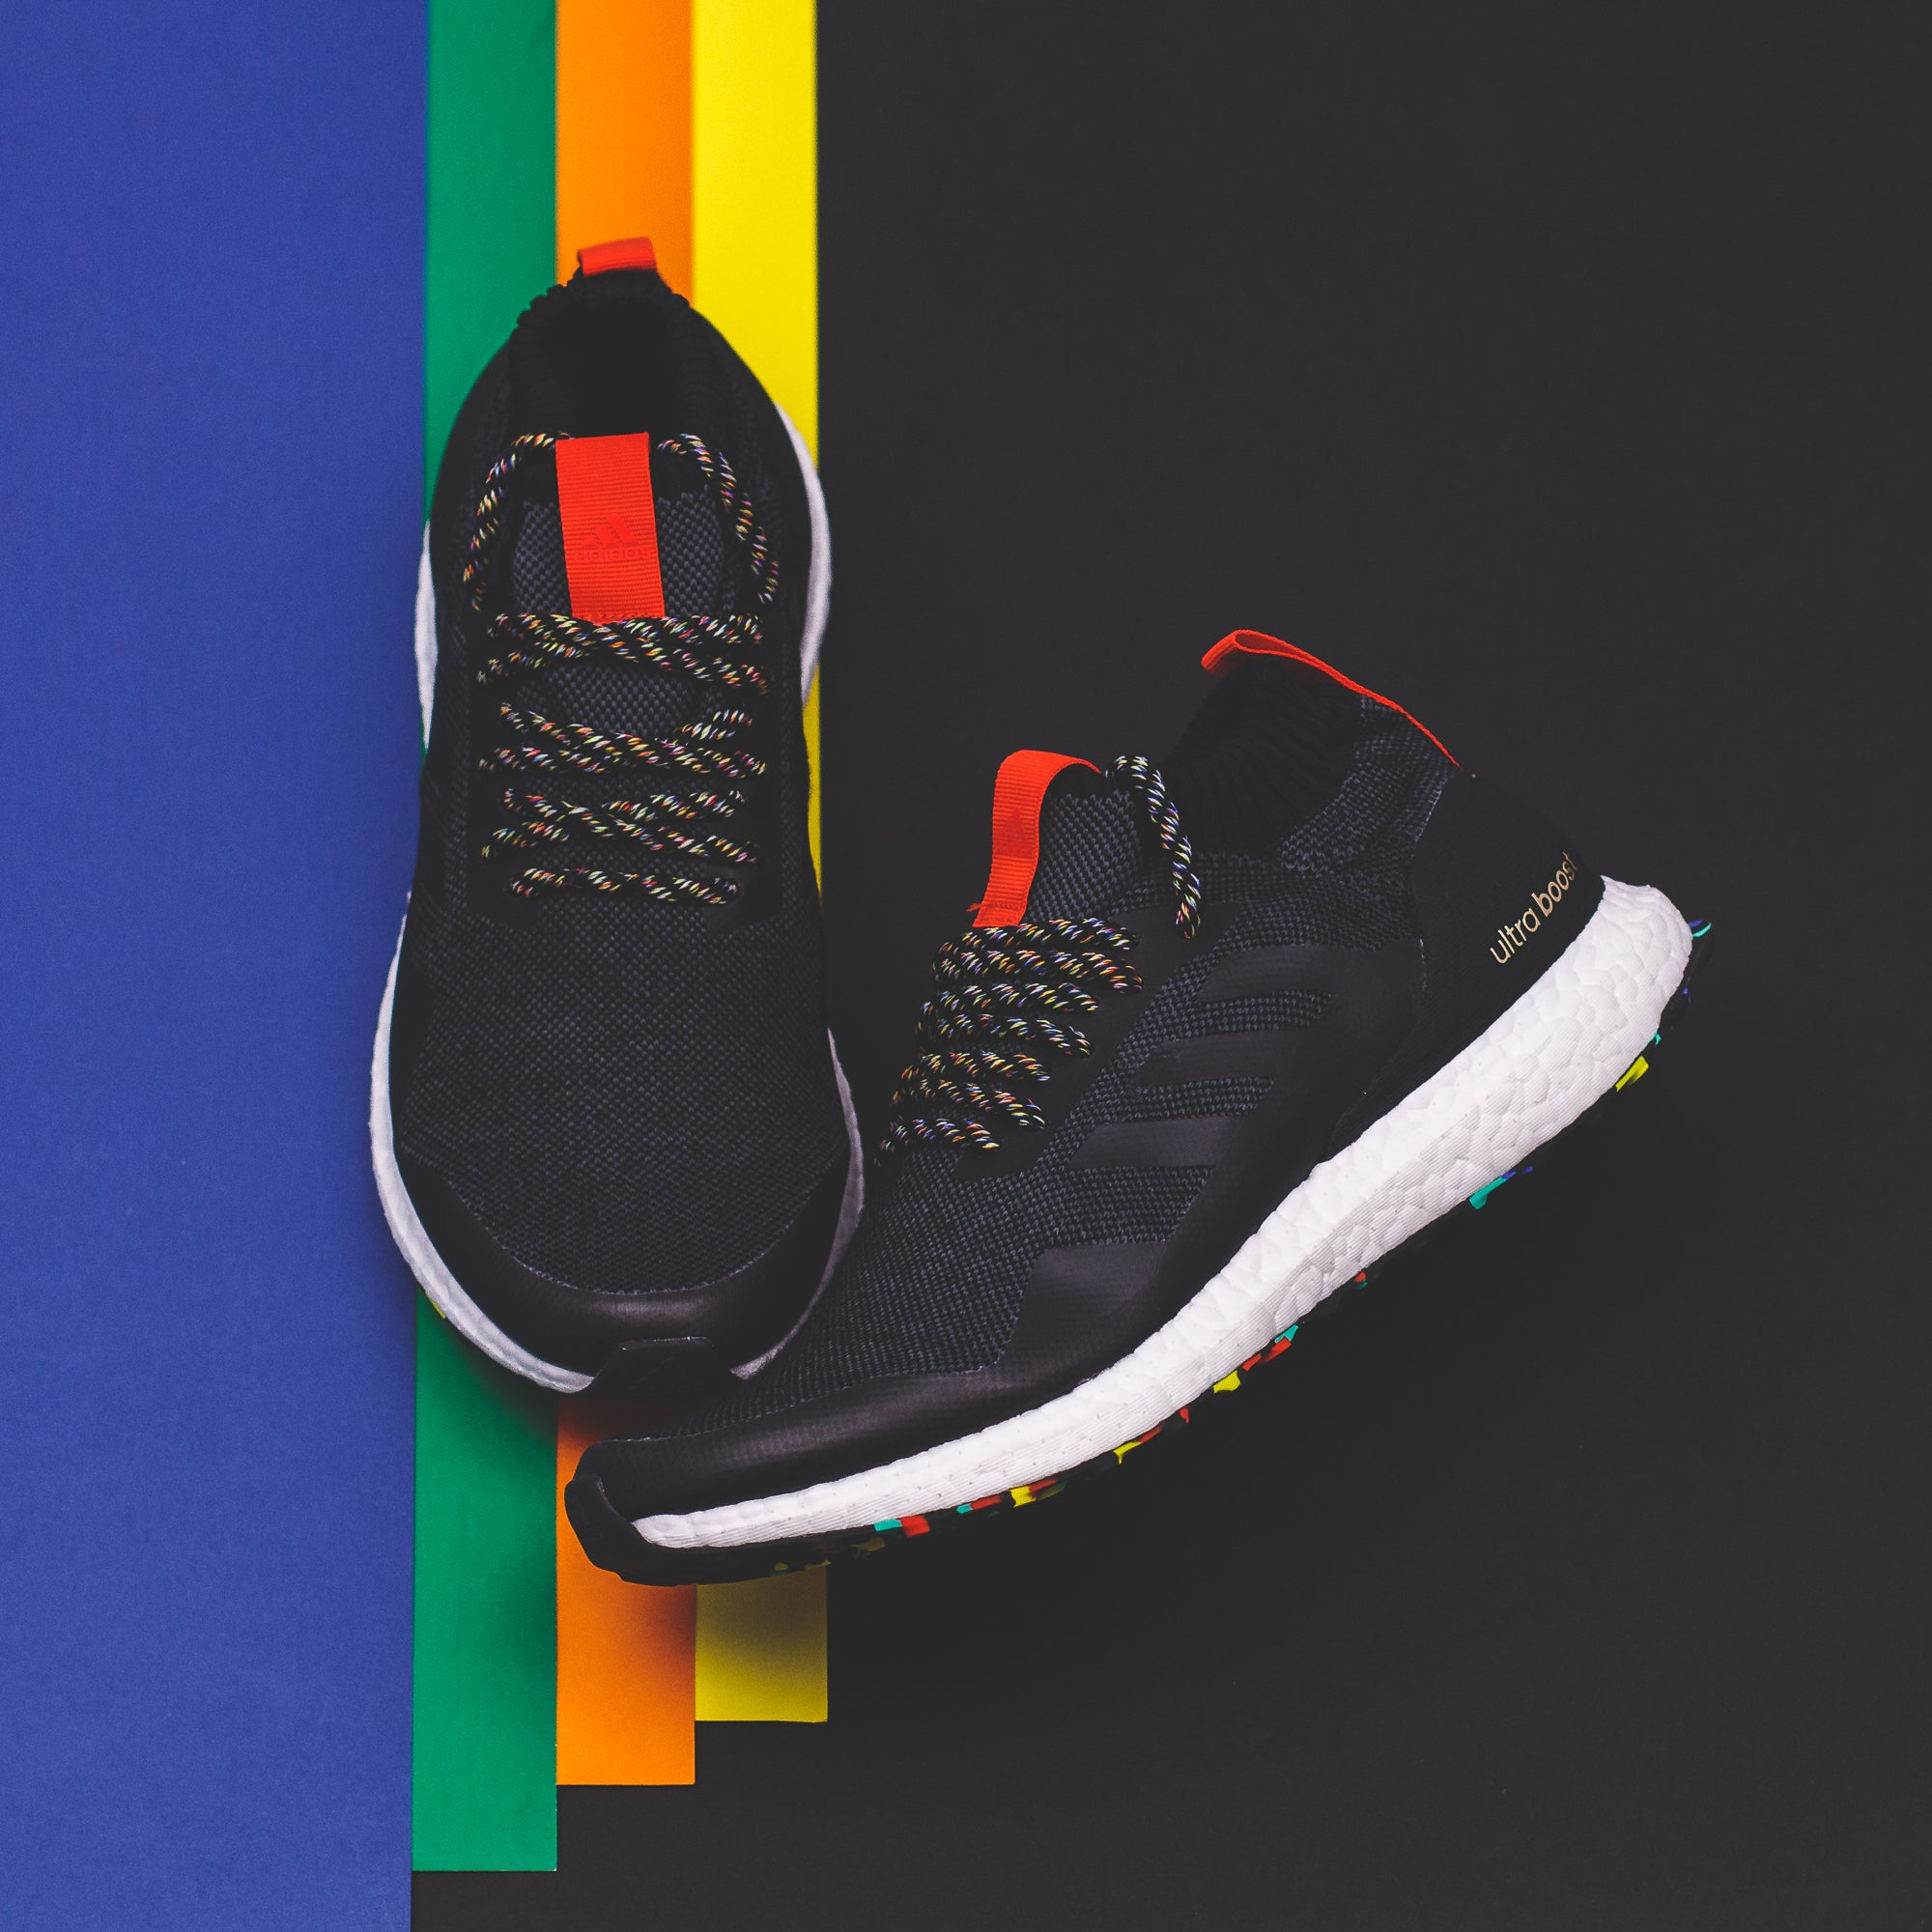 fd714d677381e Adidas Running Ultra Boost Mid Black in Multicolor (G26841 ...